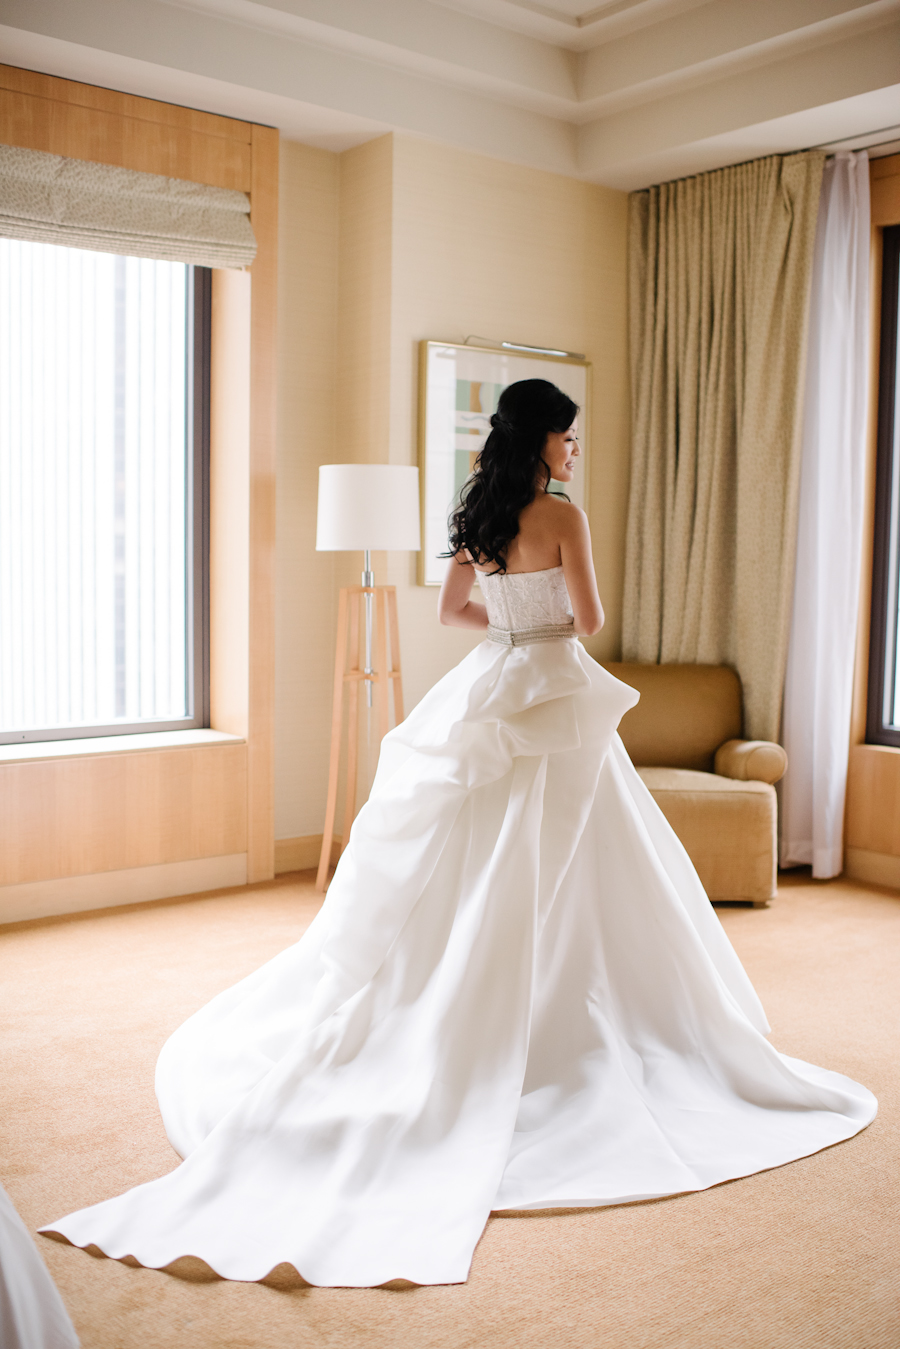 four seasons hotel wedding ang weddings and events brian hatton photography-6.jpg